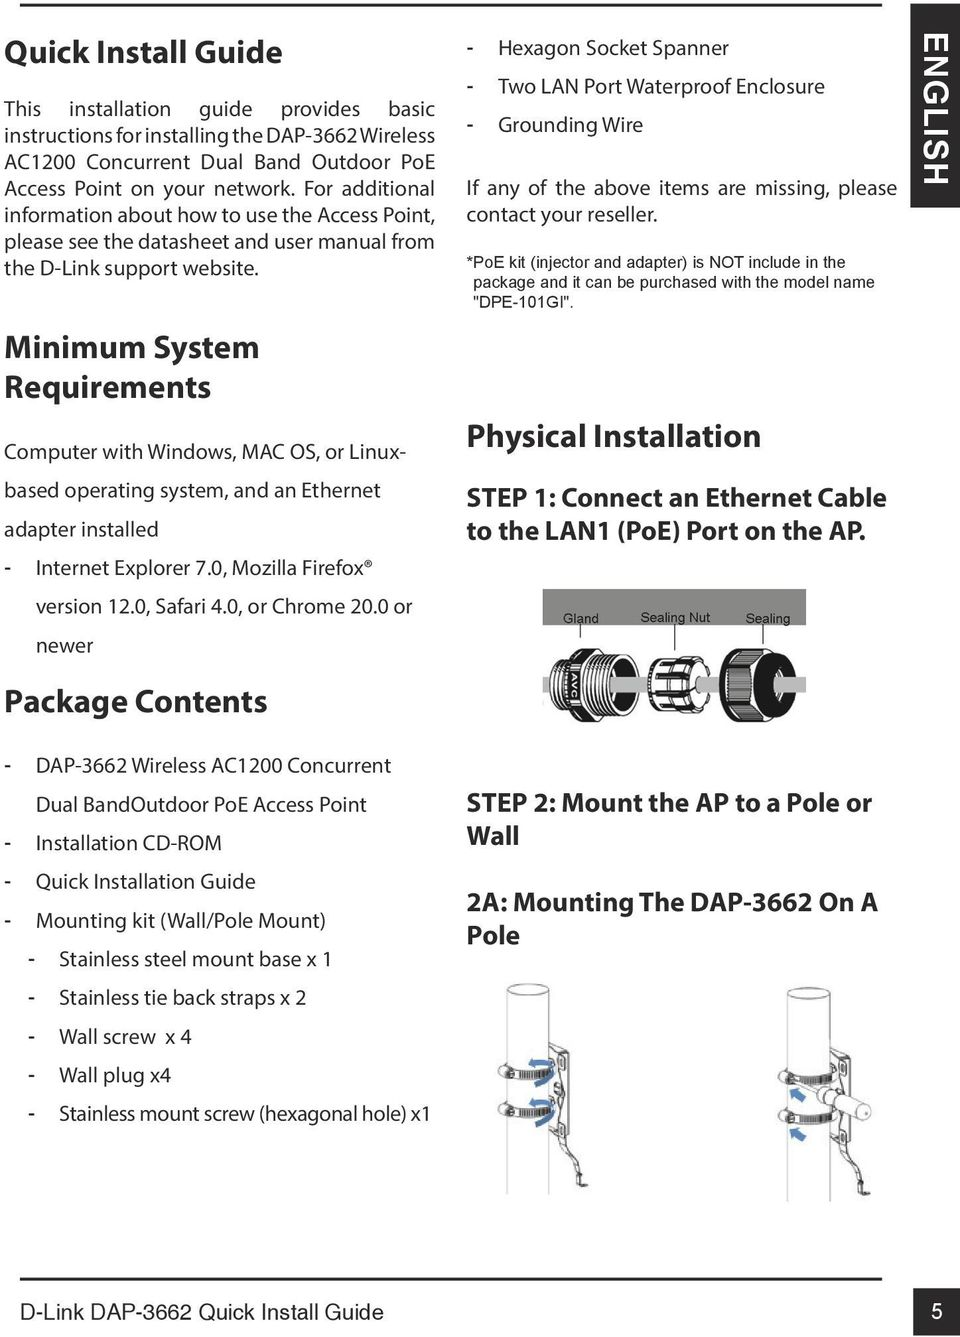 Minimum System Requirements Computer with Windows, MAC OS, or Linuxbased operating system, and an Ethernet adapter installed Internet Explorer 7.0, Mozilla Firefox version 12.0, Safari 4.